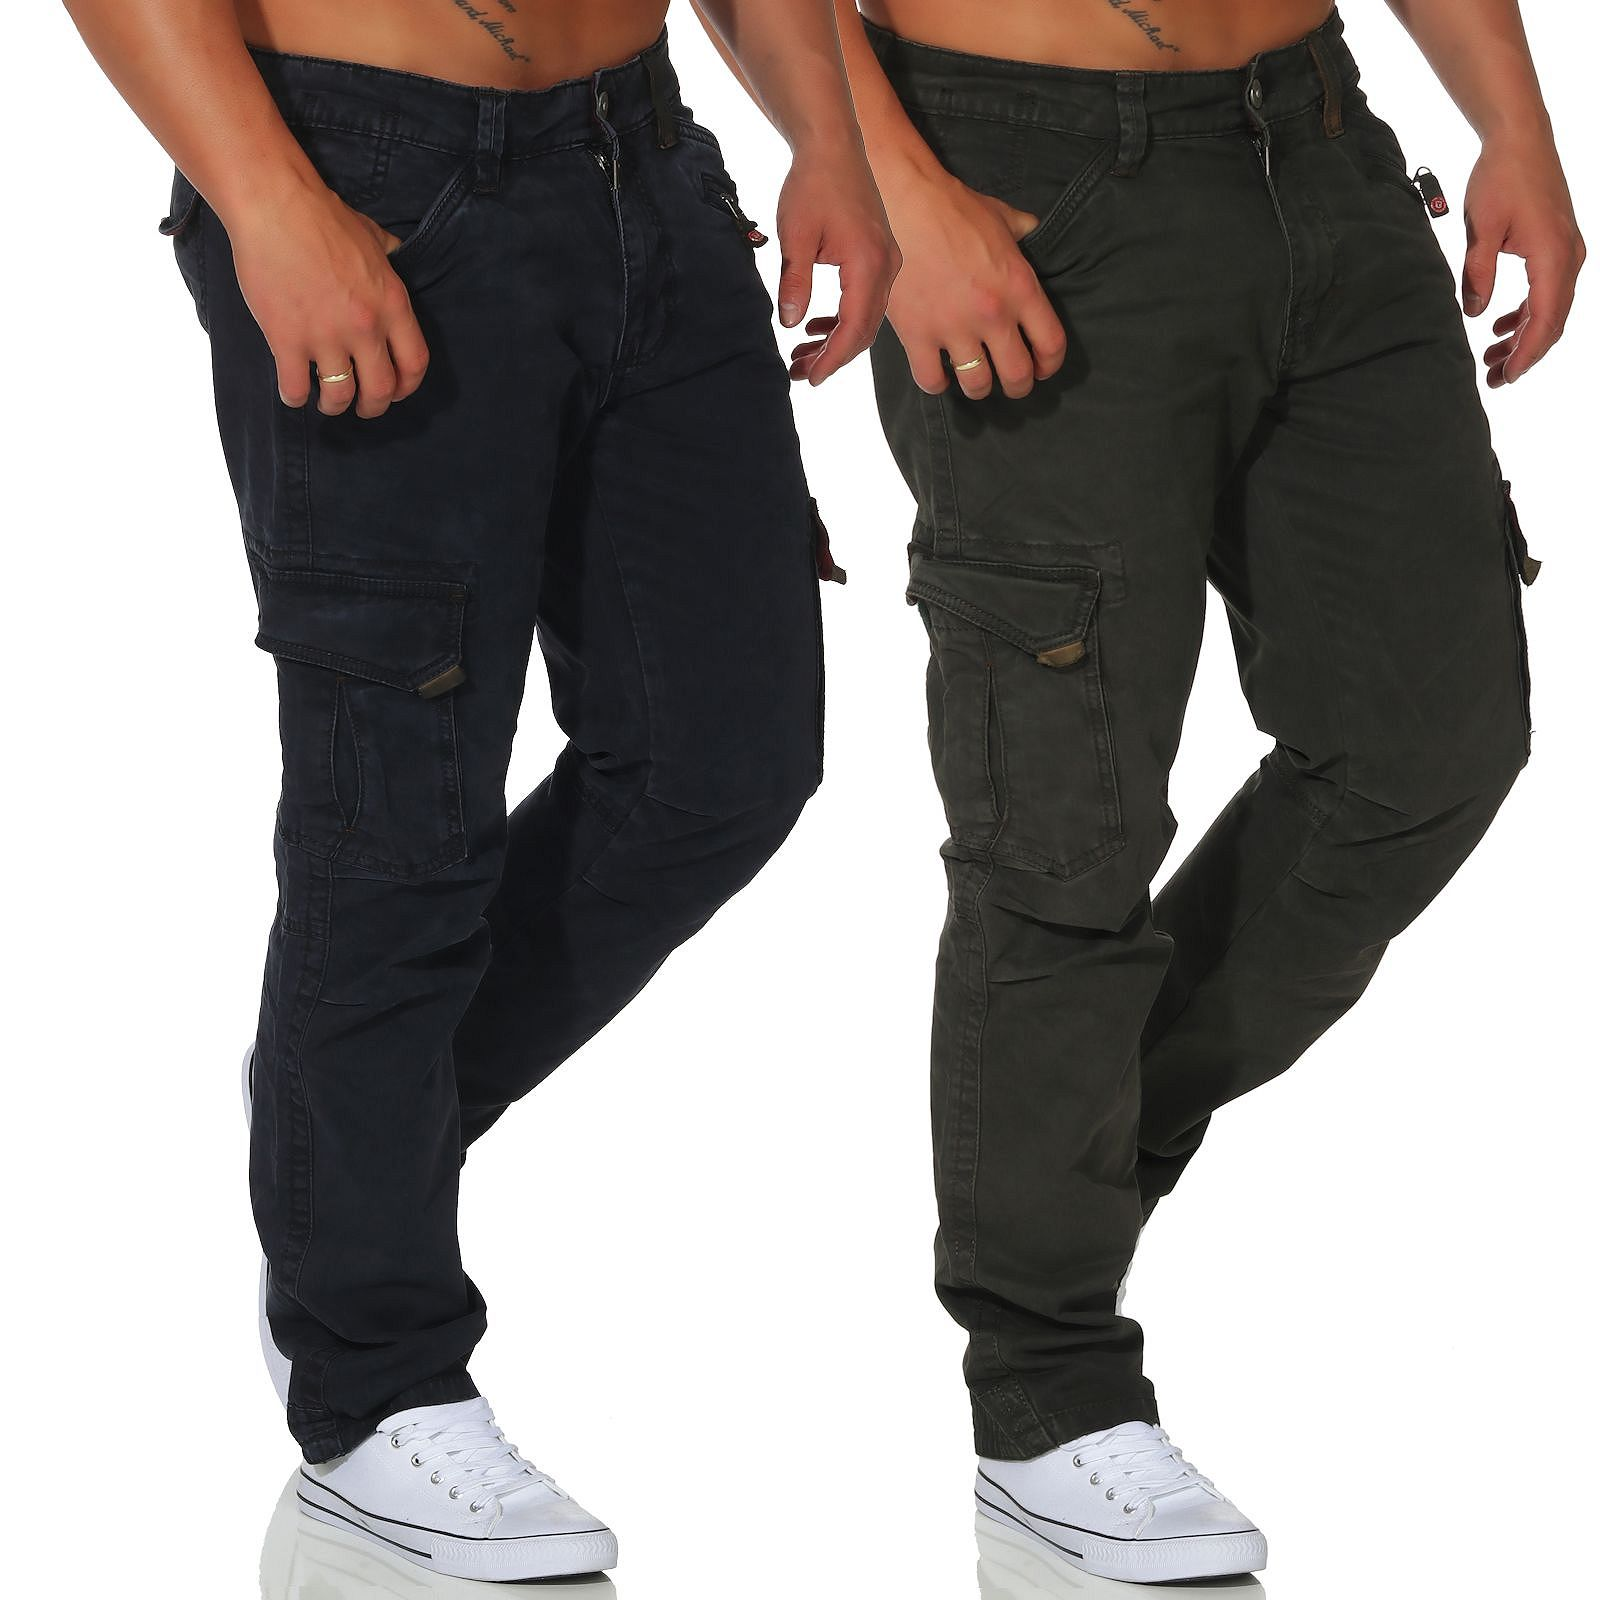 Details about Timezone Men's Cargo Pants Fabric Trousers Cargo Pants Outdoor Regular Ben 26 10011 18 show original title